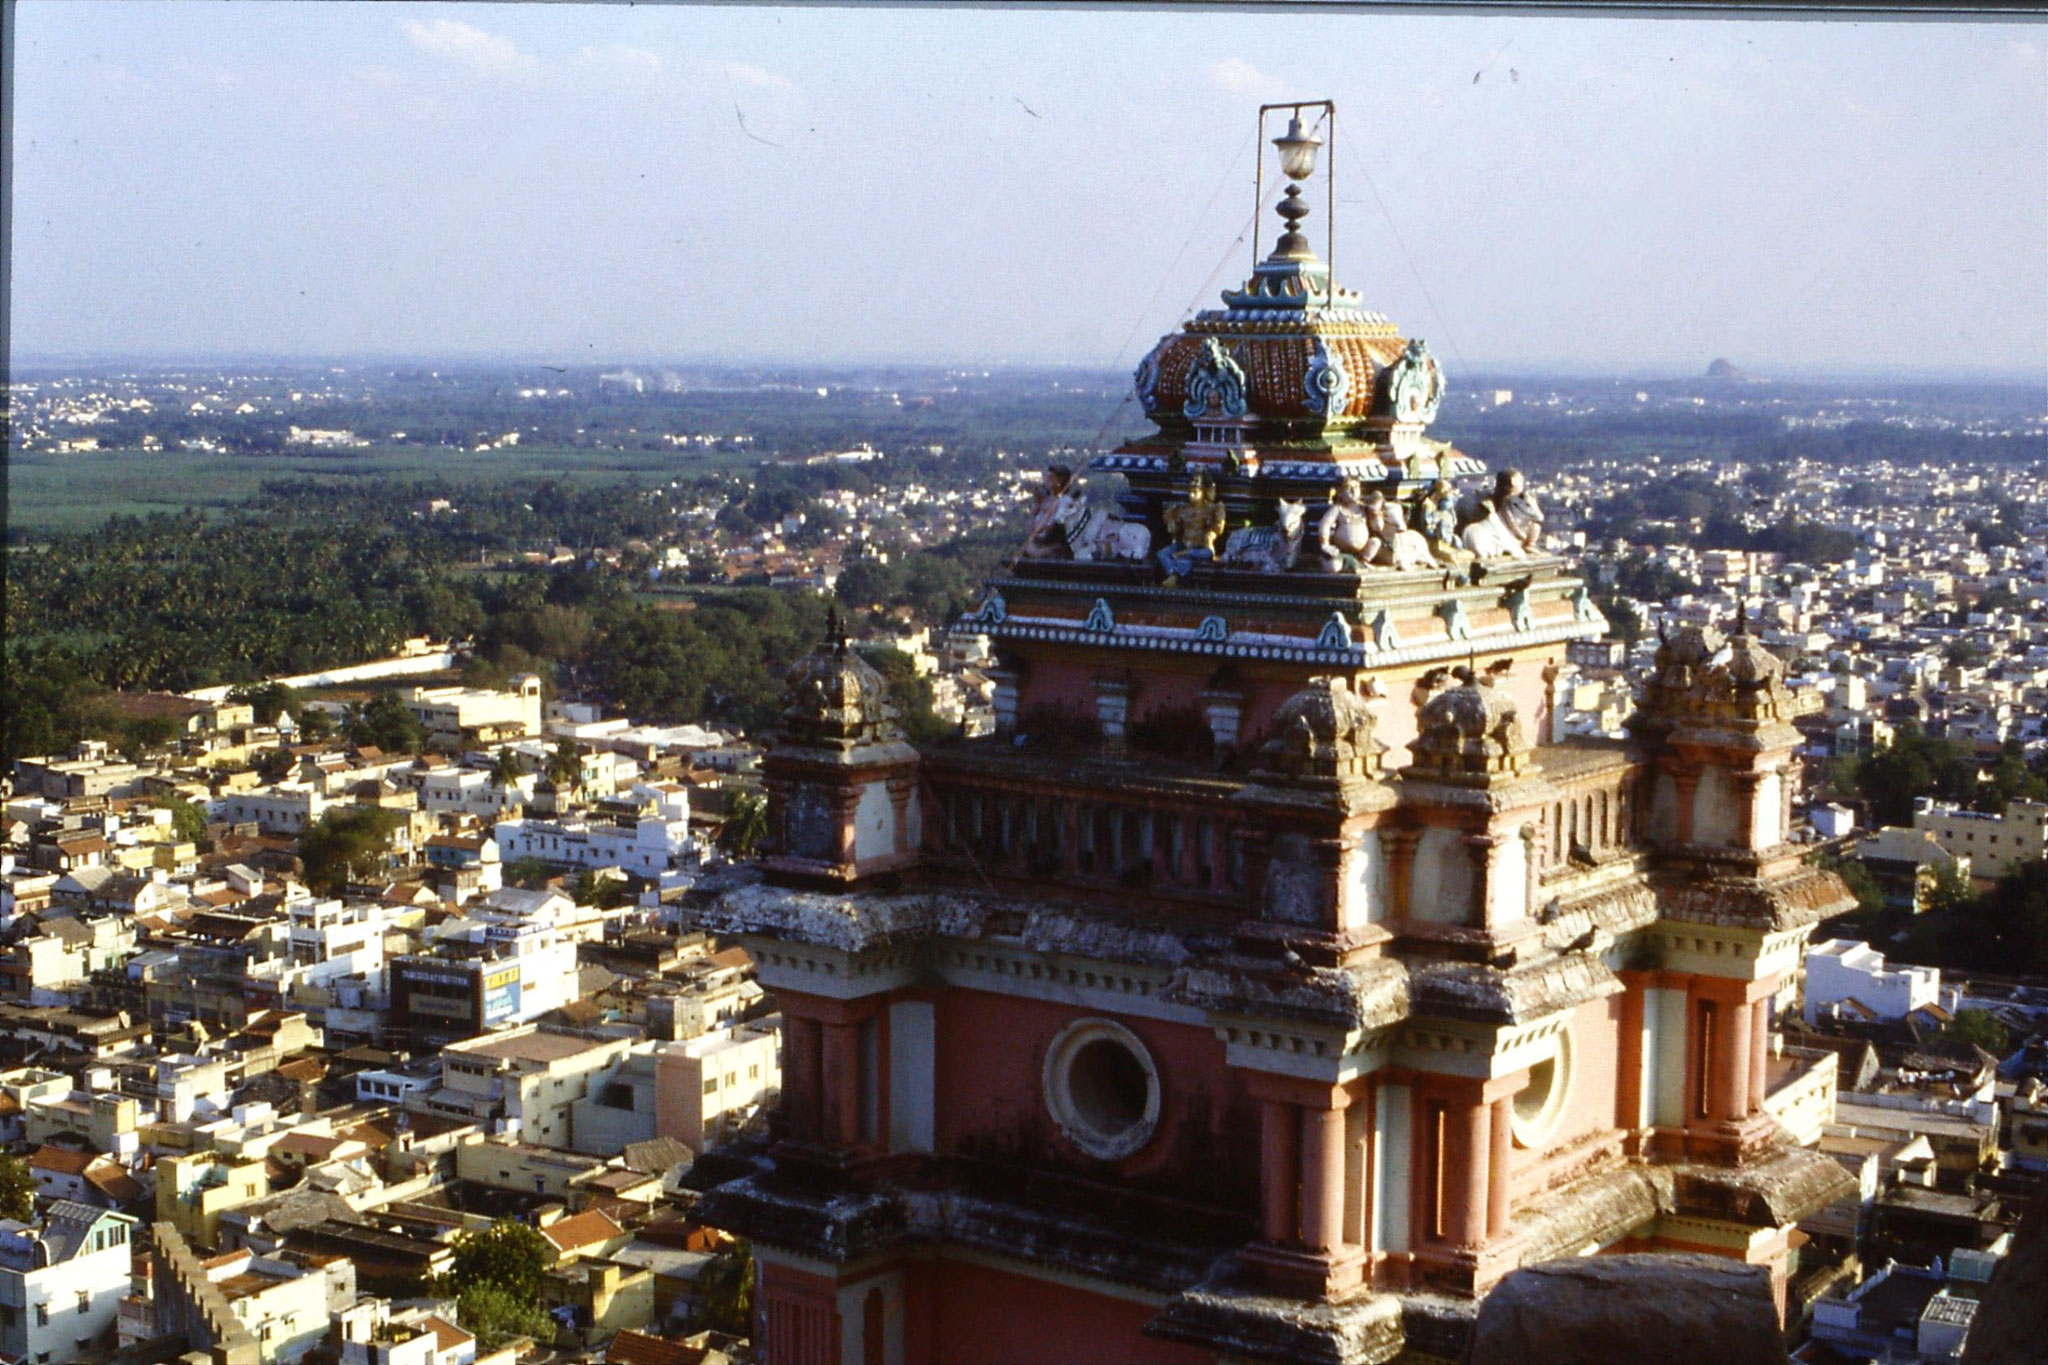 104/17: 13/2/1990 Trichy from top of rock fort looking SE with bit of Hindu Temple in foreground